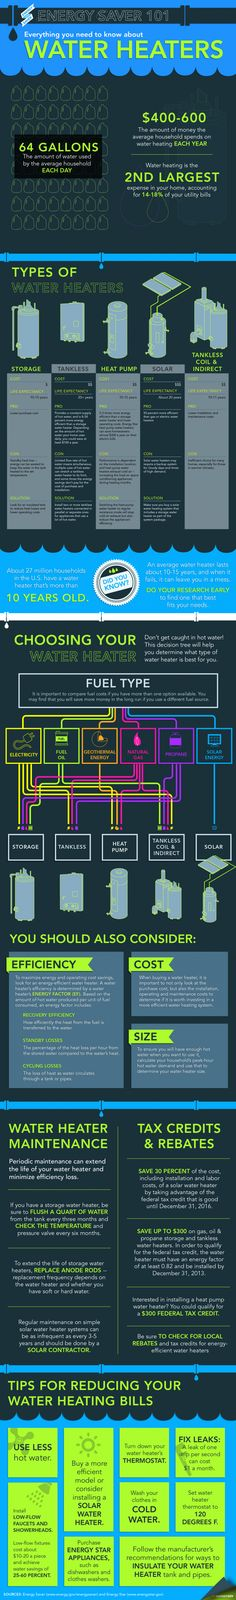 New Energy Saver 101 infographic lays out the different types of water heaters on the market and will help you figure out how to select the best model for your home. | Infographic by Sarah Gerrity.